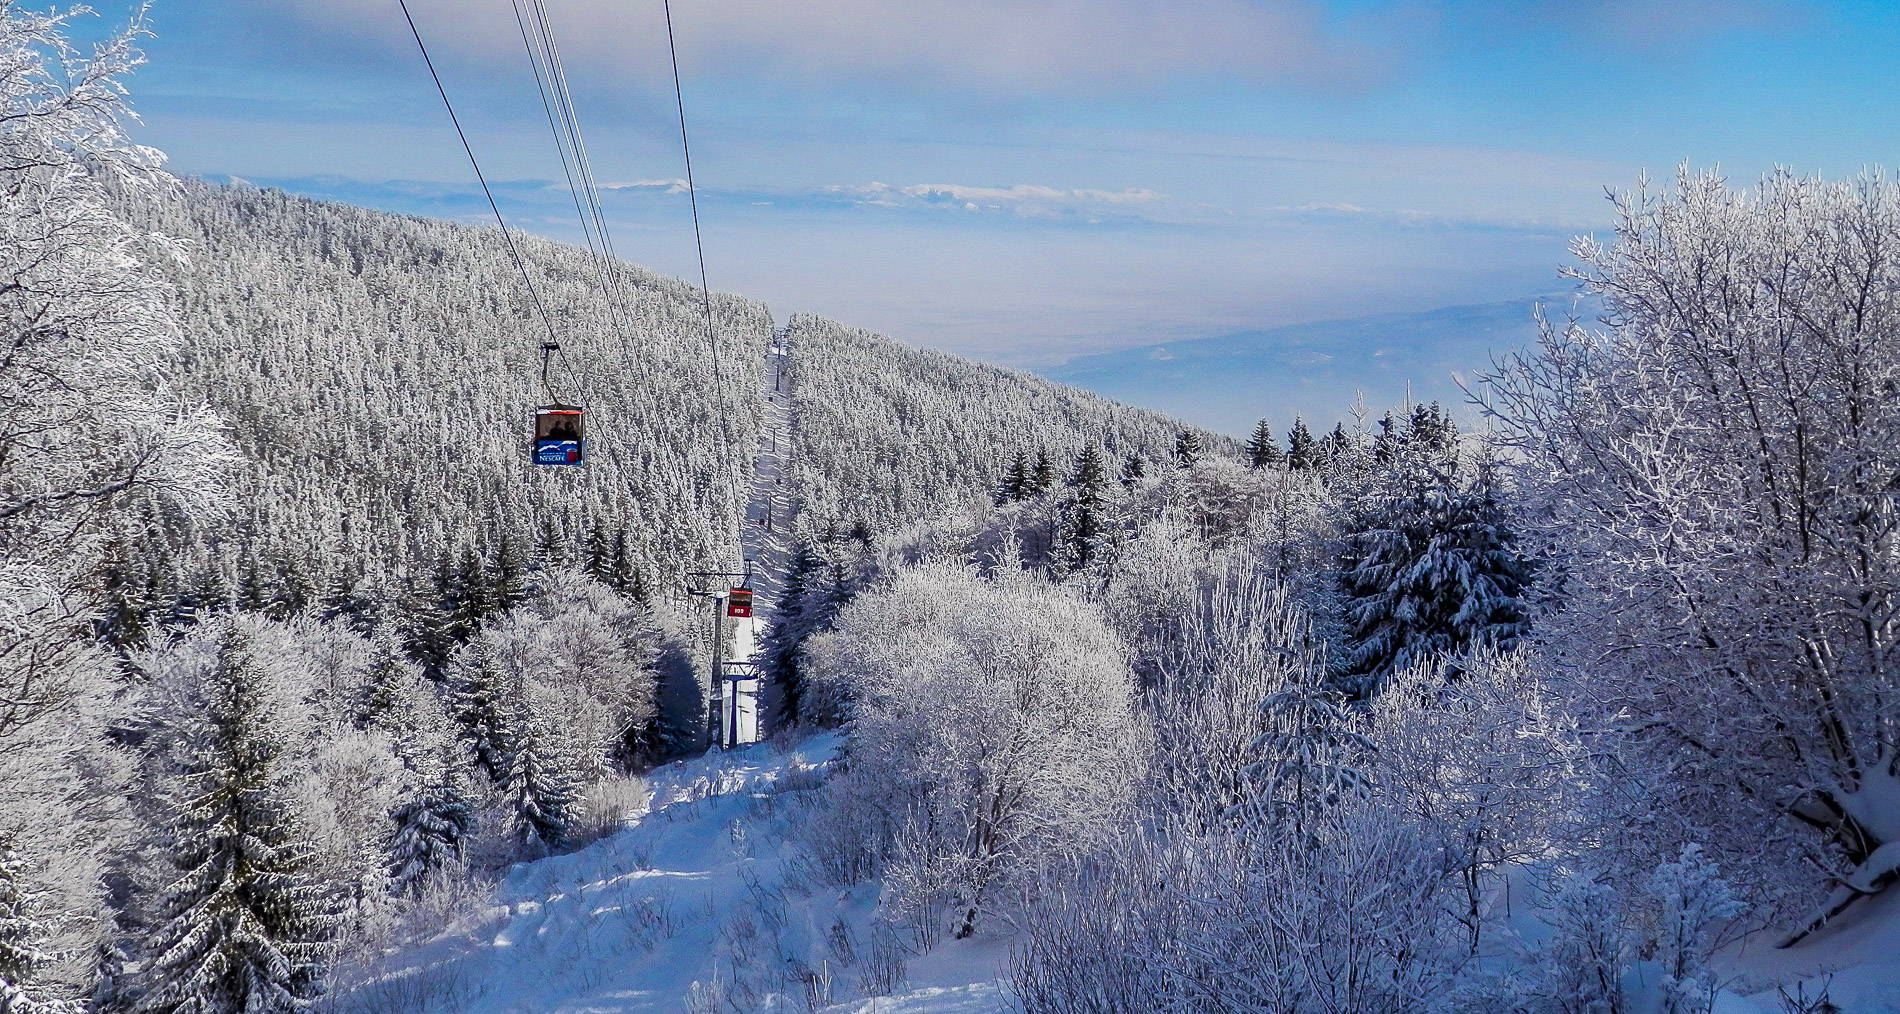 vito-valentinetti-100-days-of-winter-vitosha-10